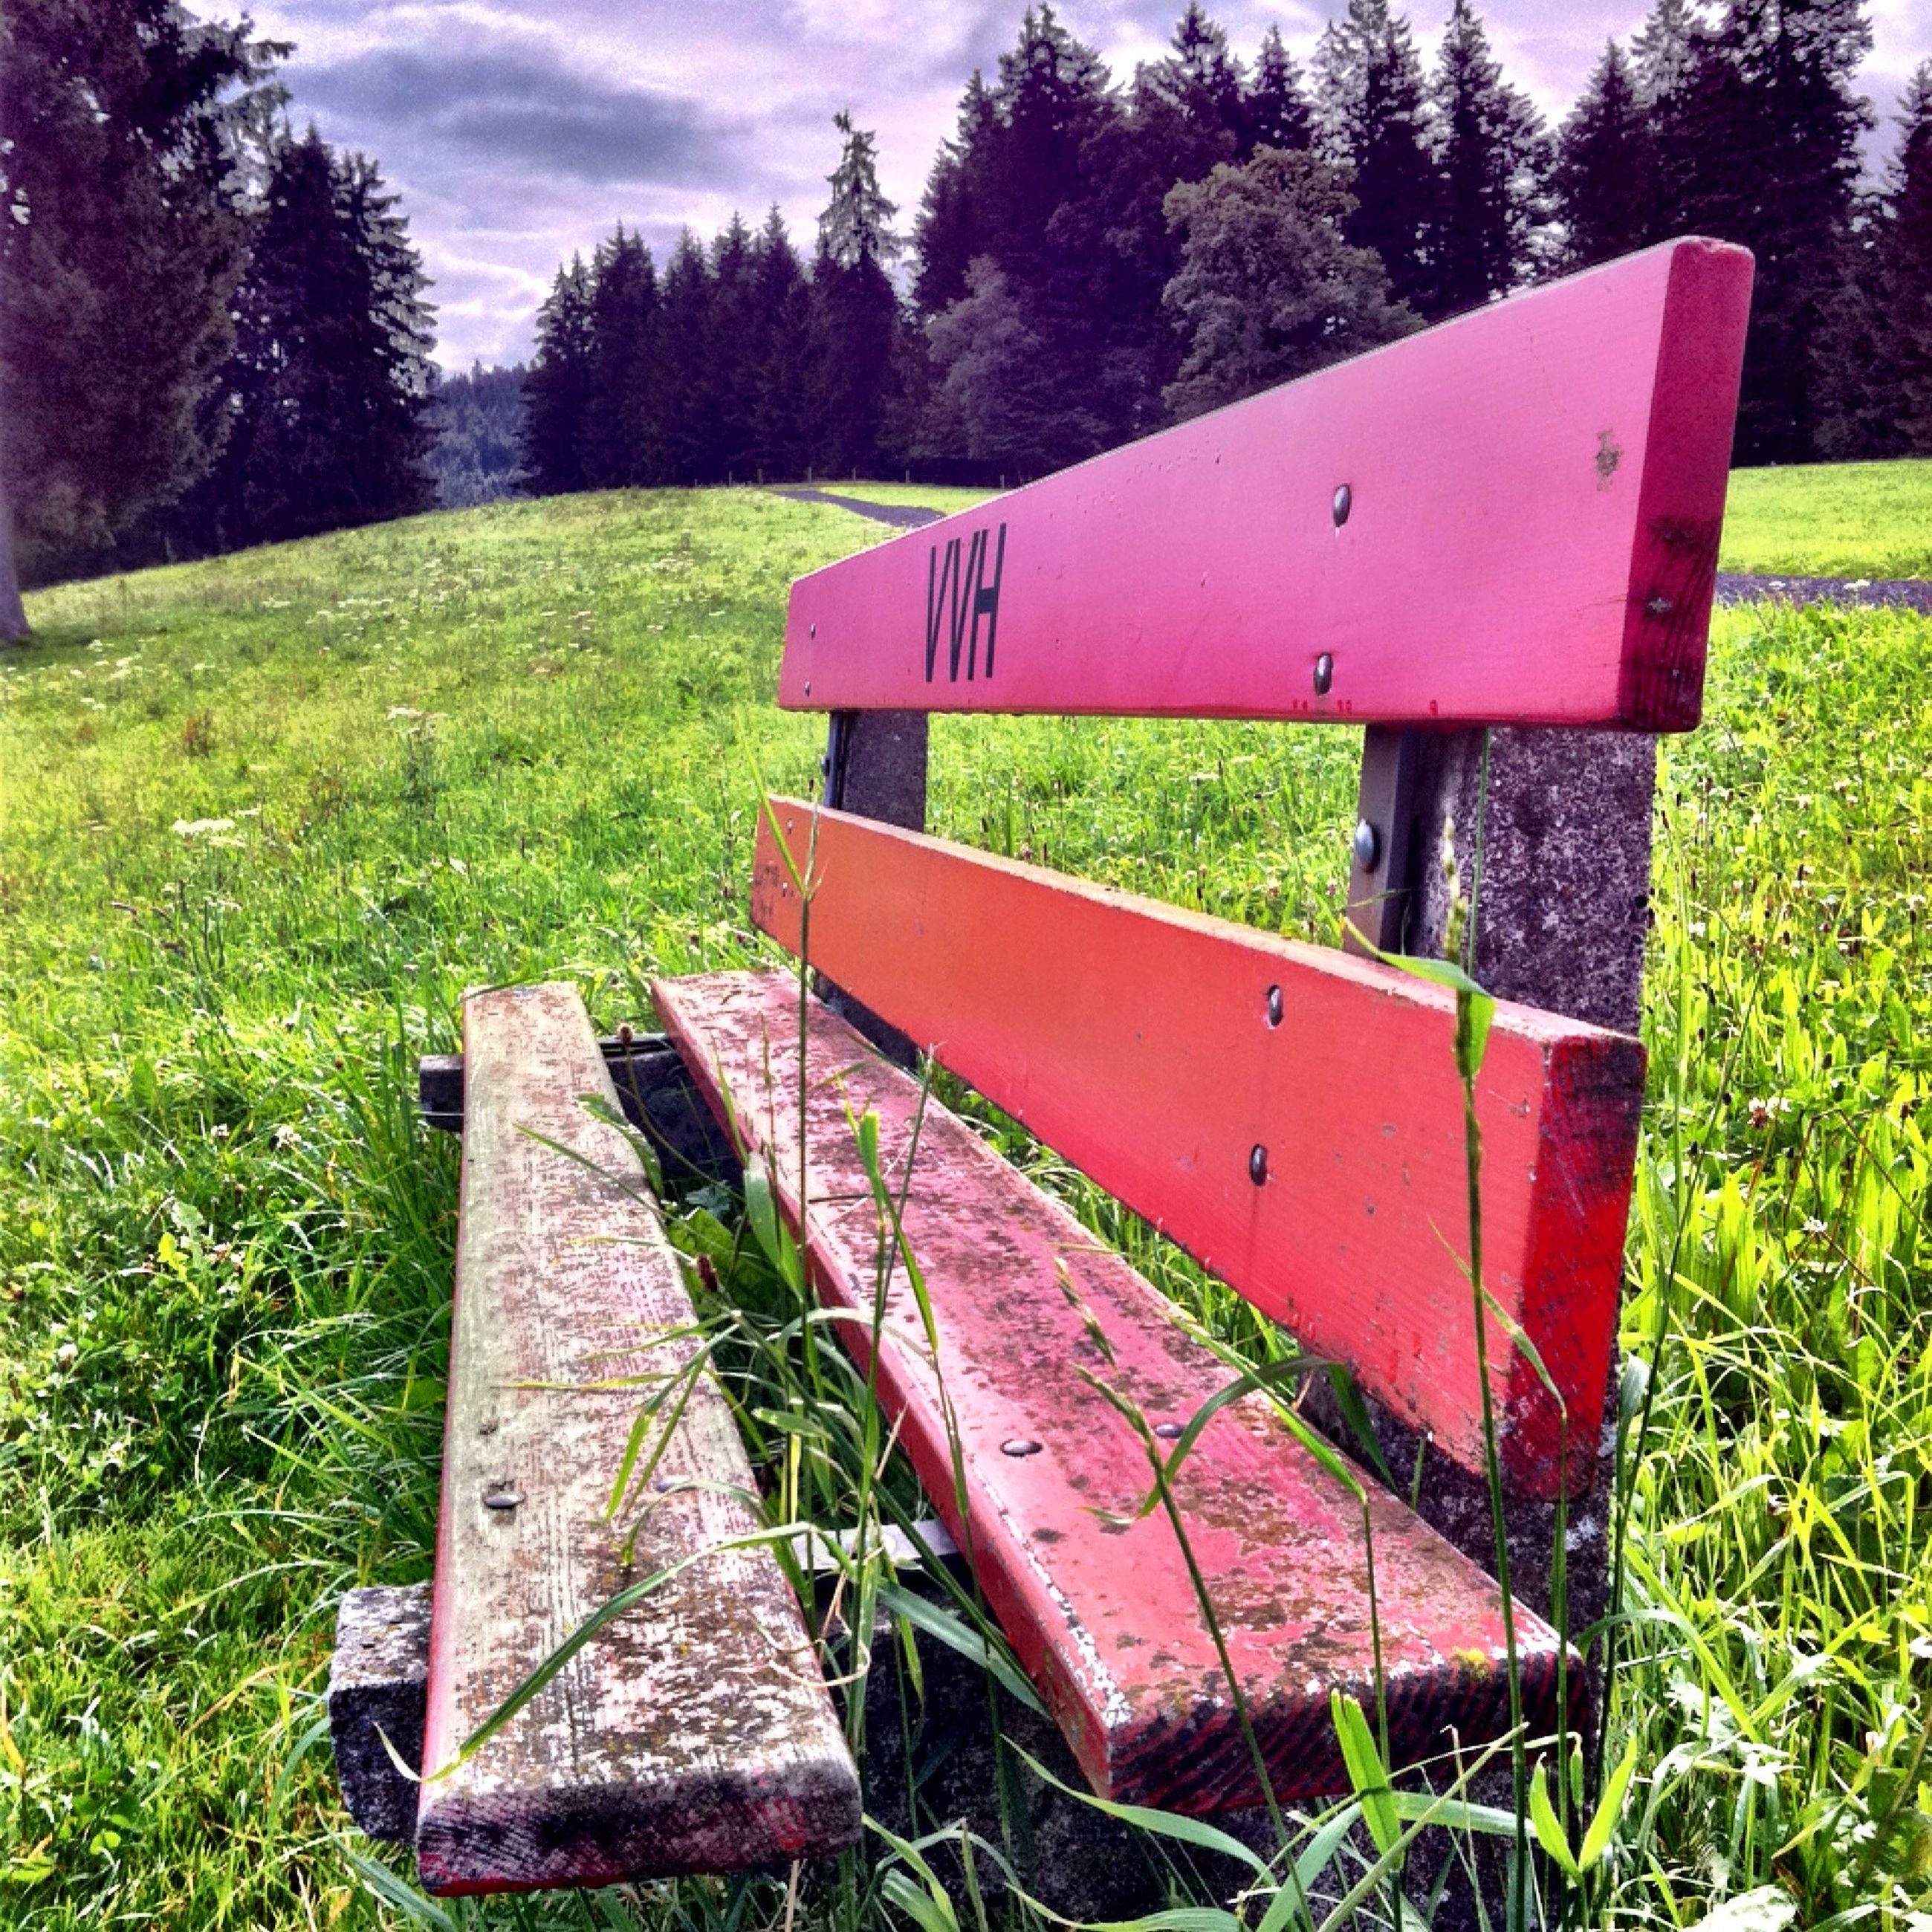 grass, grassy, field, bench, tree, green color, empty, tranquility, landscape, absence, park - man made space, nature, red, growth, tranquil scene, grassland, wood - material, sky, park bench, lawn